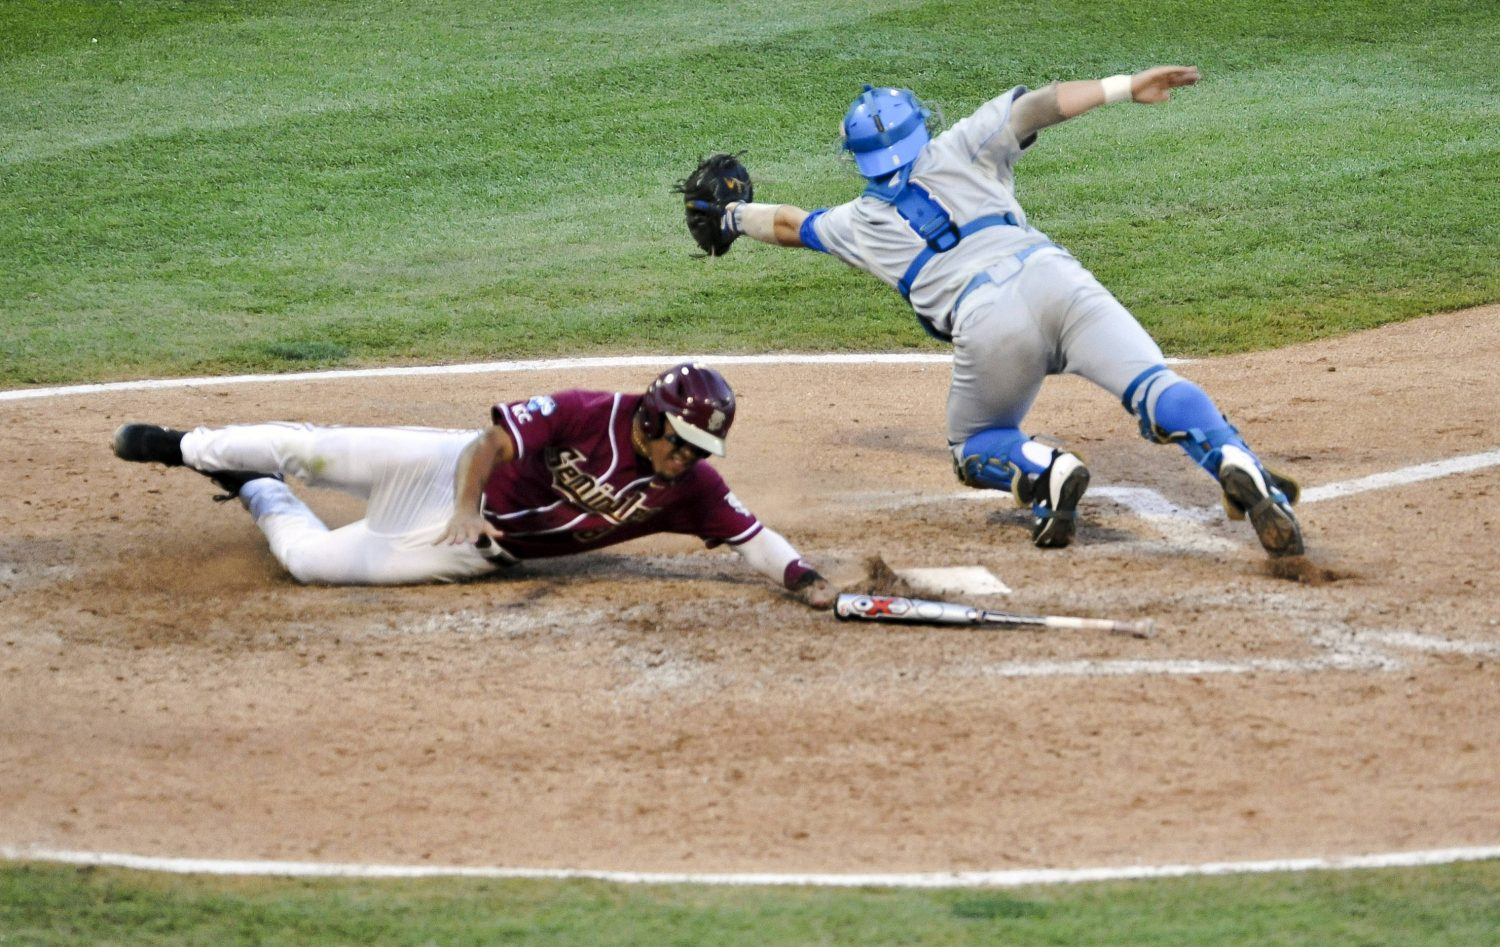 Florida State's Devon Travis, left, scores at home plate against UCLA catcher Tyler Heineman on a throwing error of third baseman Kevin Kramer, in the fourth inning. Florida State's Steven Rodriguez also scored on the play. (AP Photo/Dave Weaver)